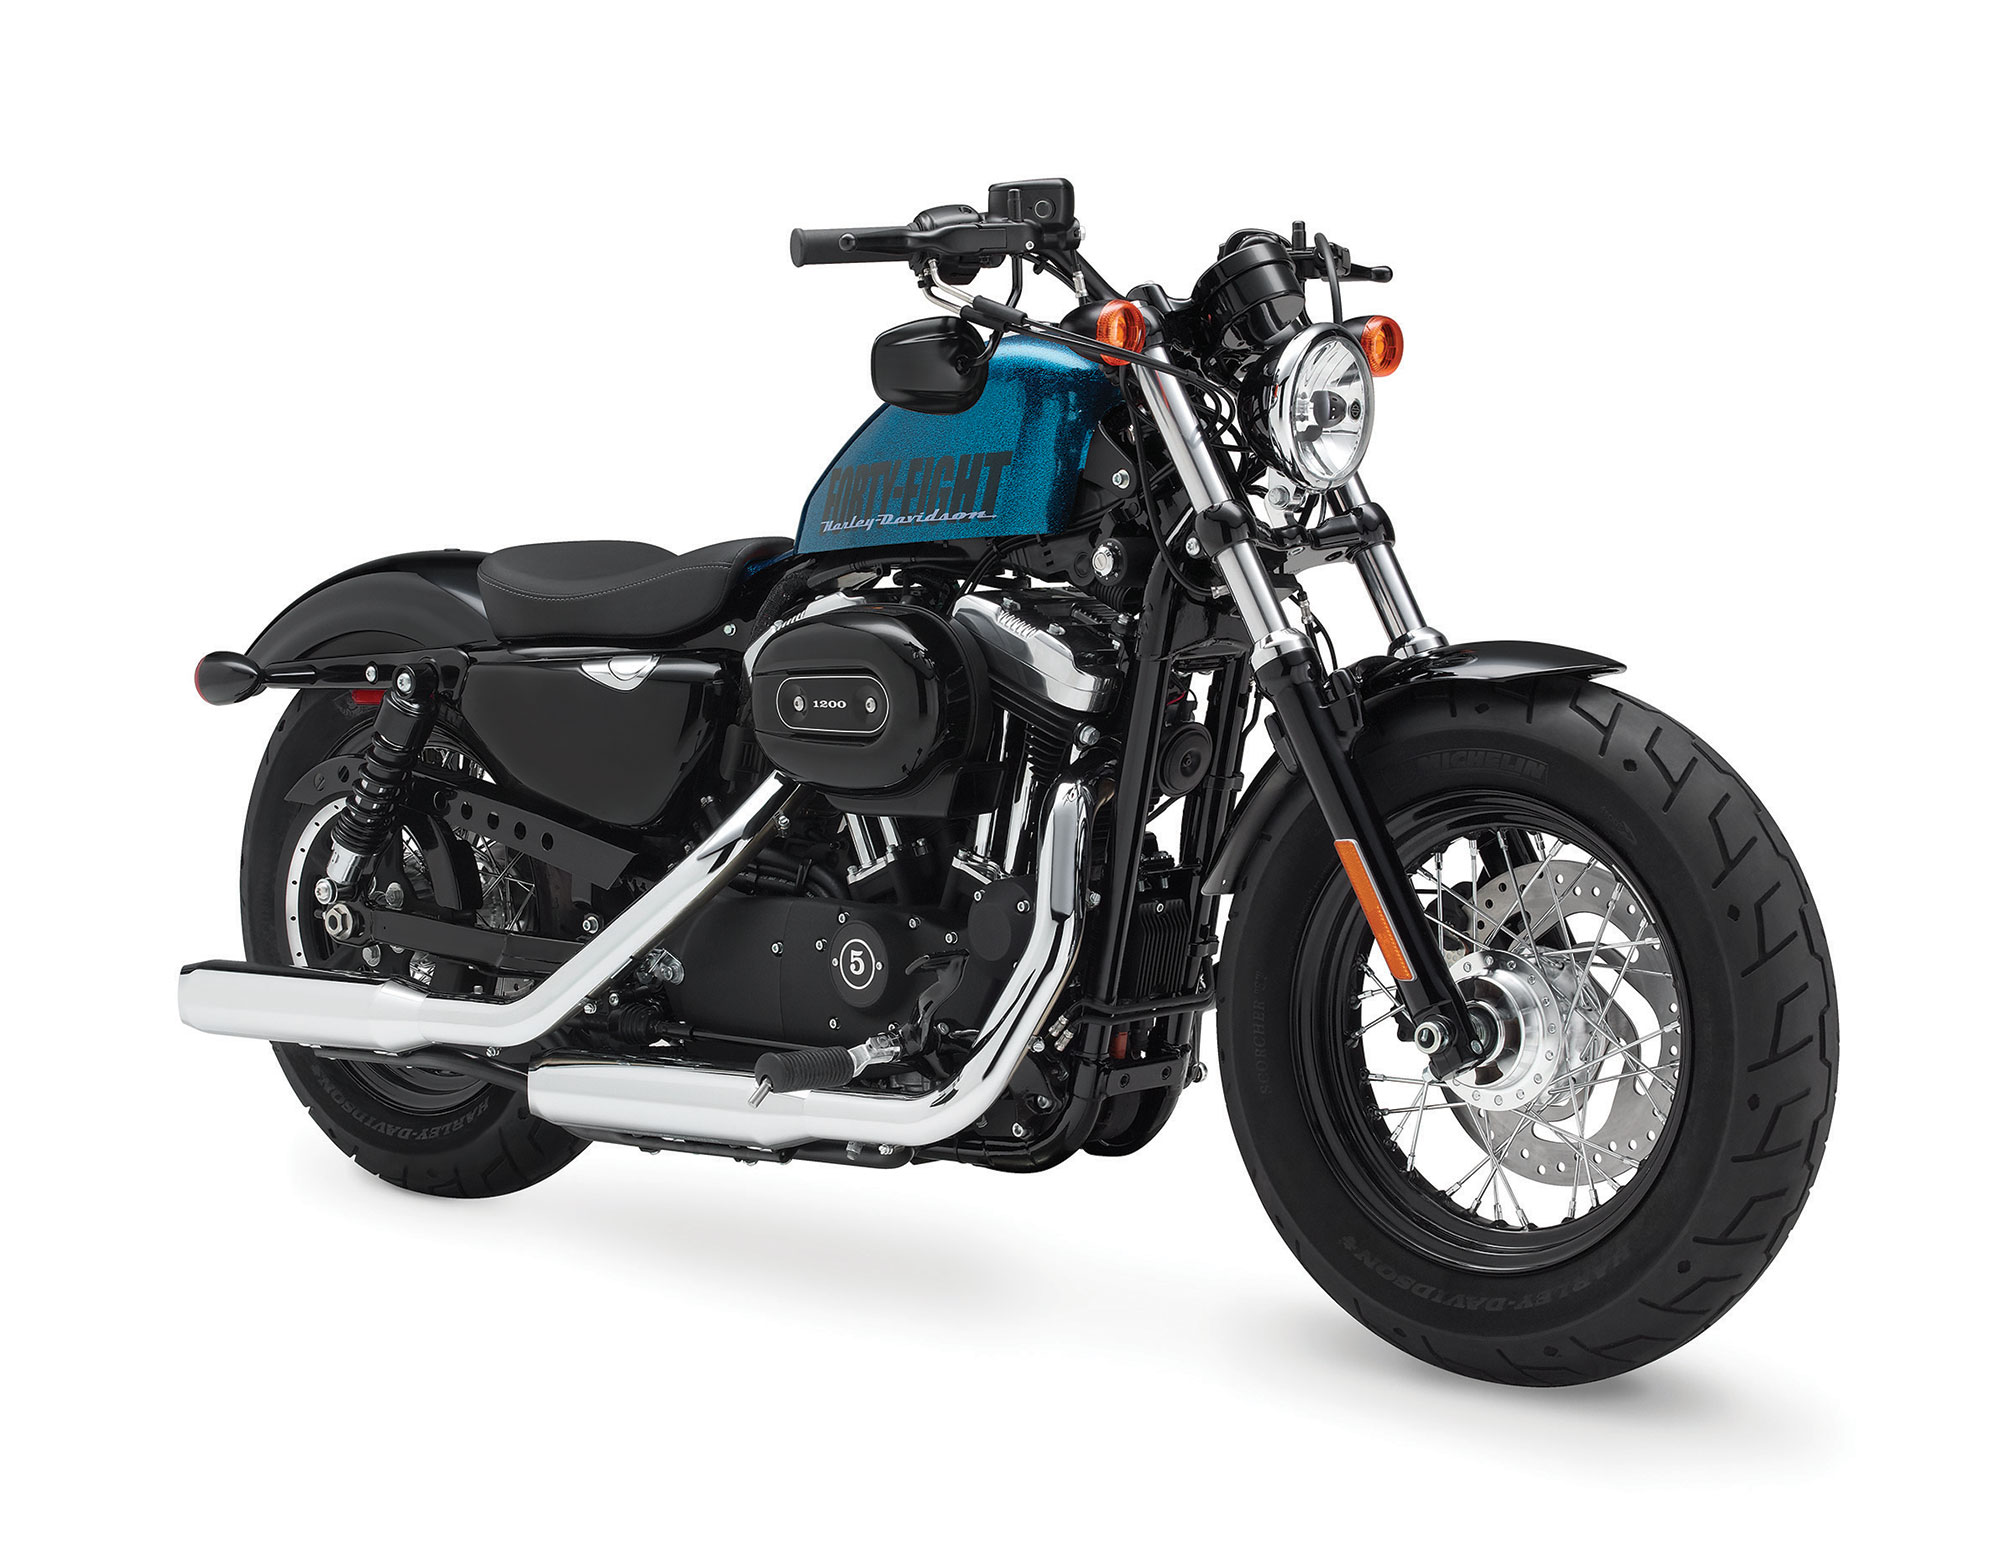 2014 harley davidson sportster forty eight dark custom. Black Bedroom Furniture Sets. Home Design Ideas